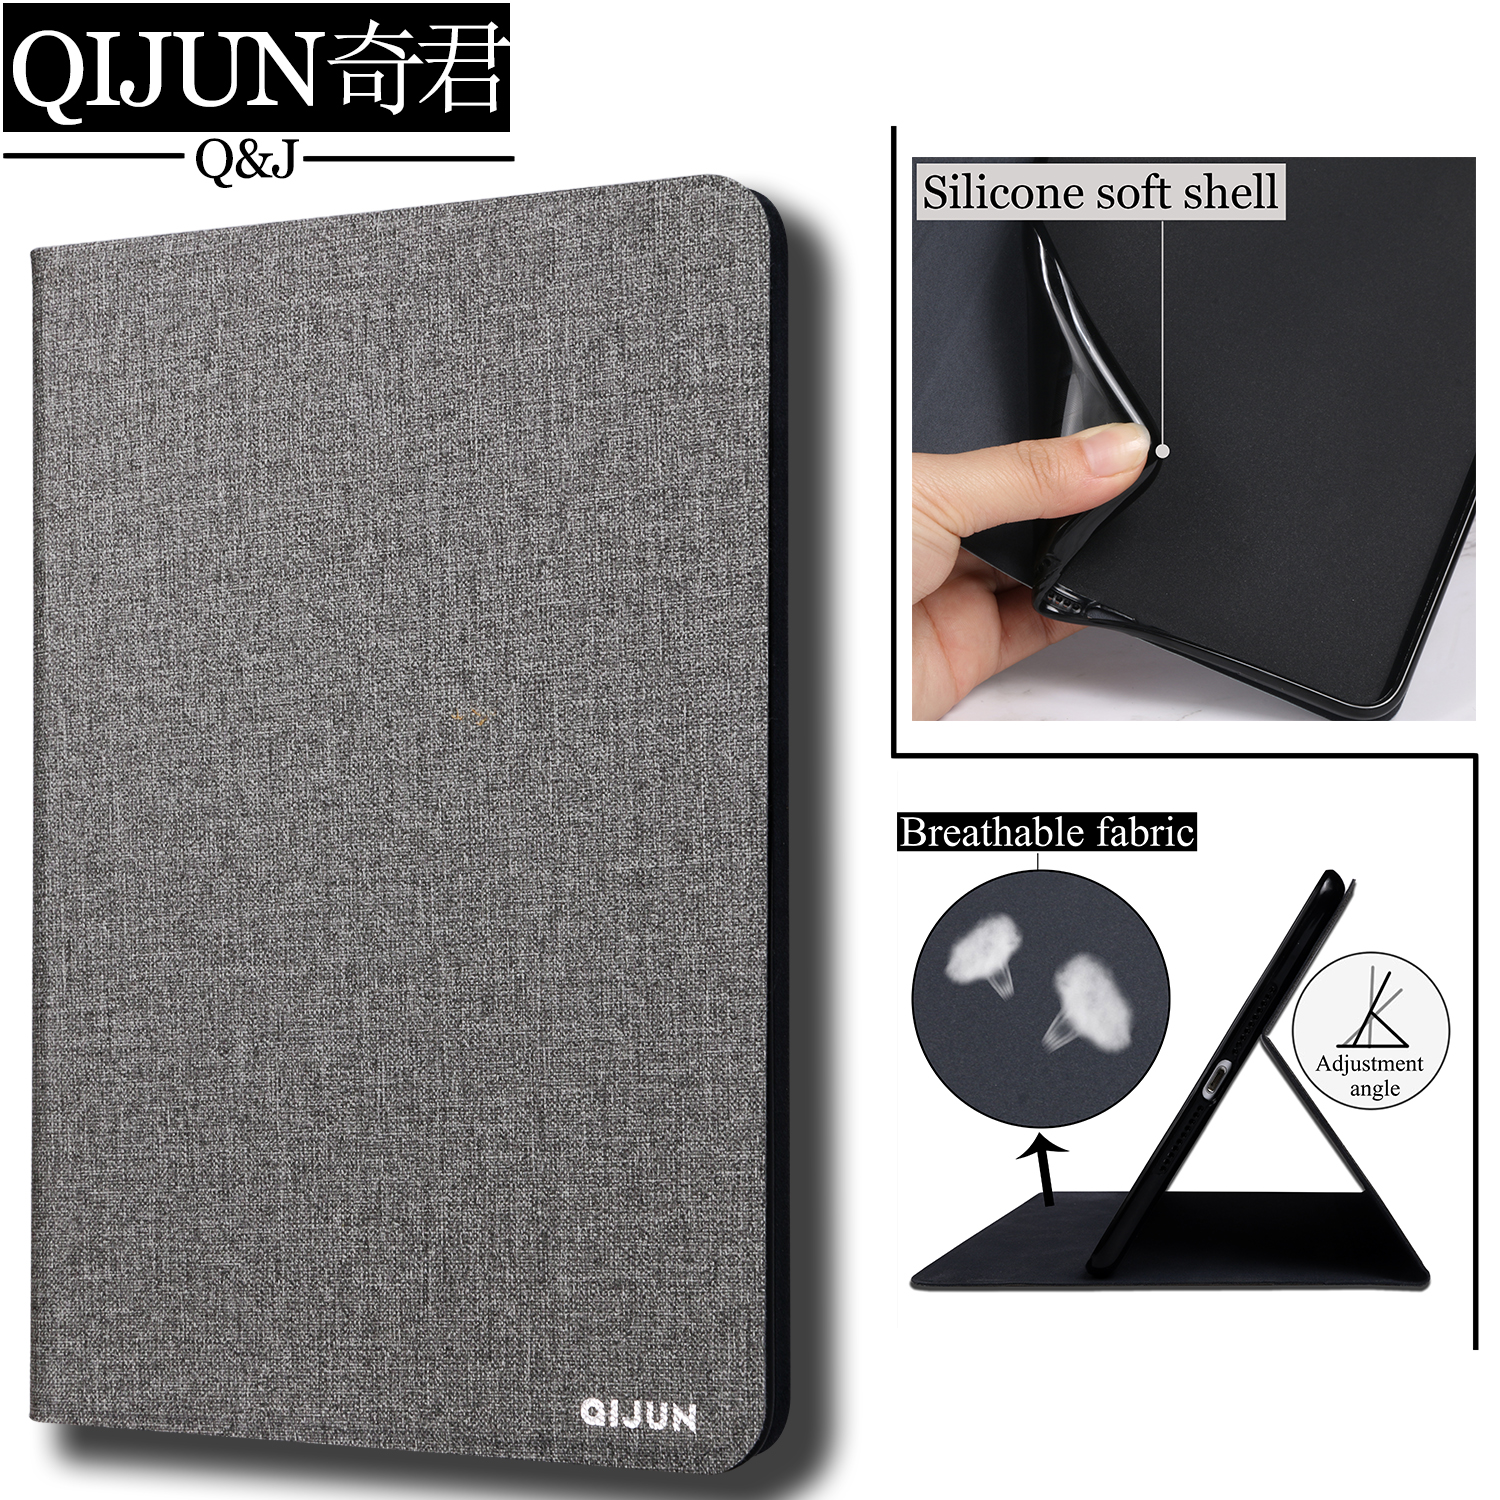 QIJUN tablet flip <font><b>case</b></font> for Apple <font><b>ipad</b></font> pro 11 inch protective Stand Cover Silicone soft shell fundas capa for <font><b>A1980</b></font> A2013 A1934 image